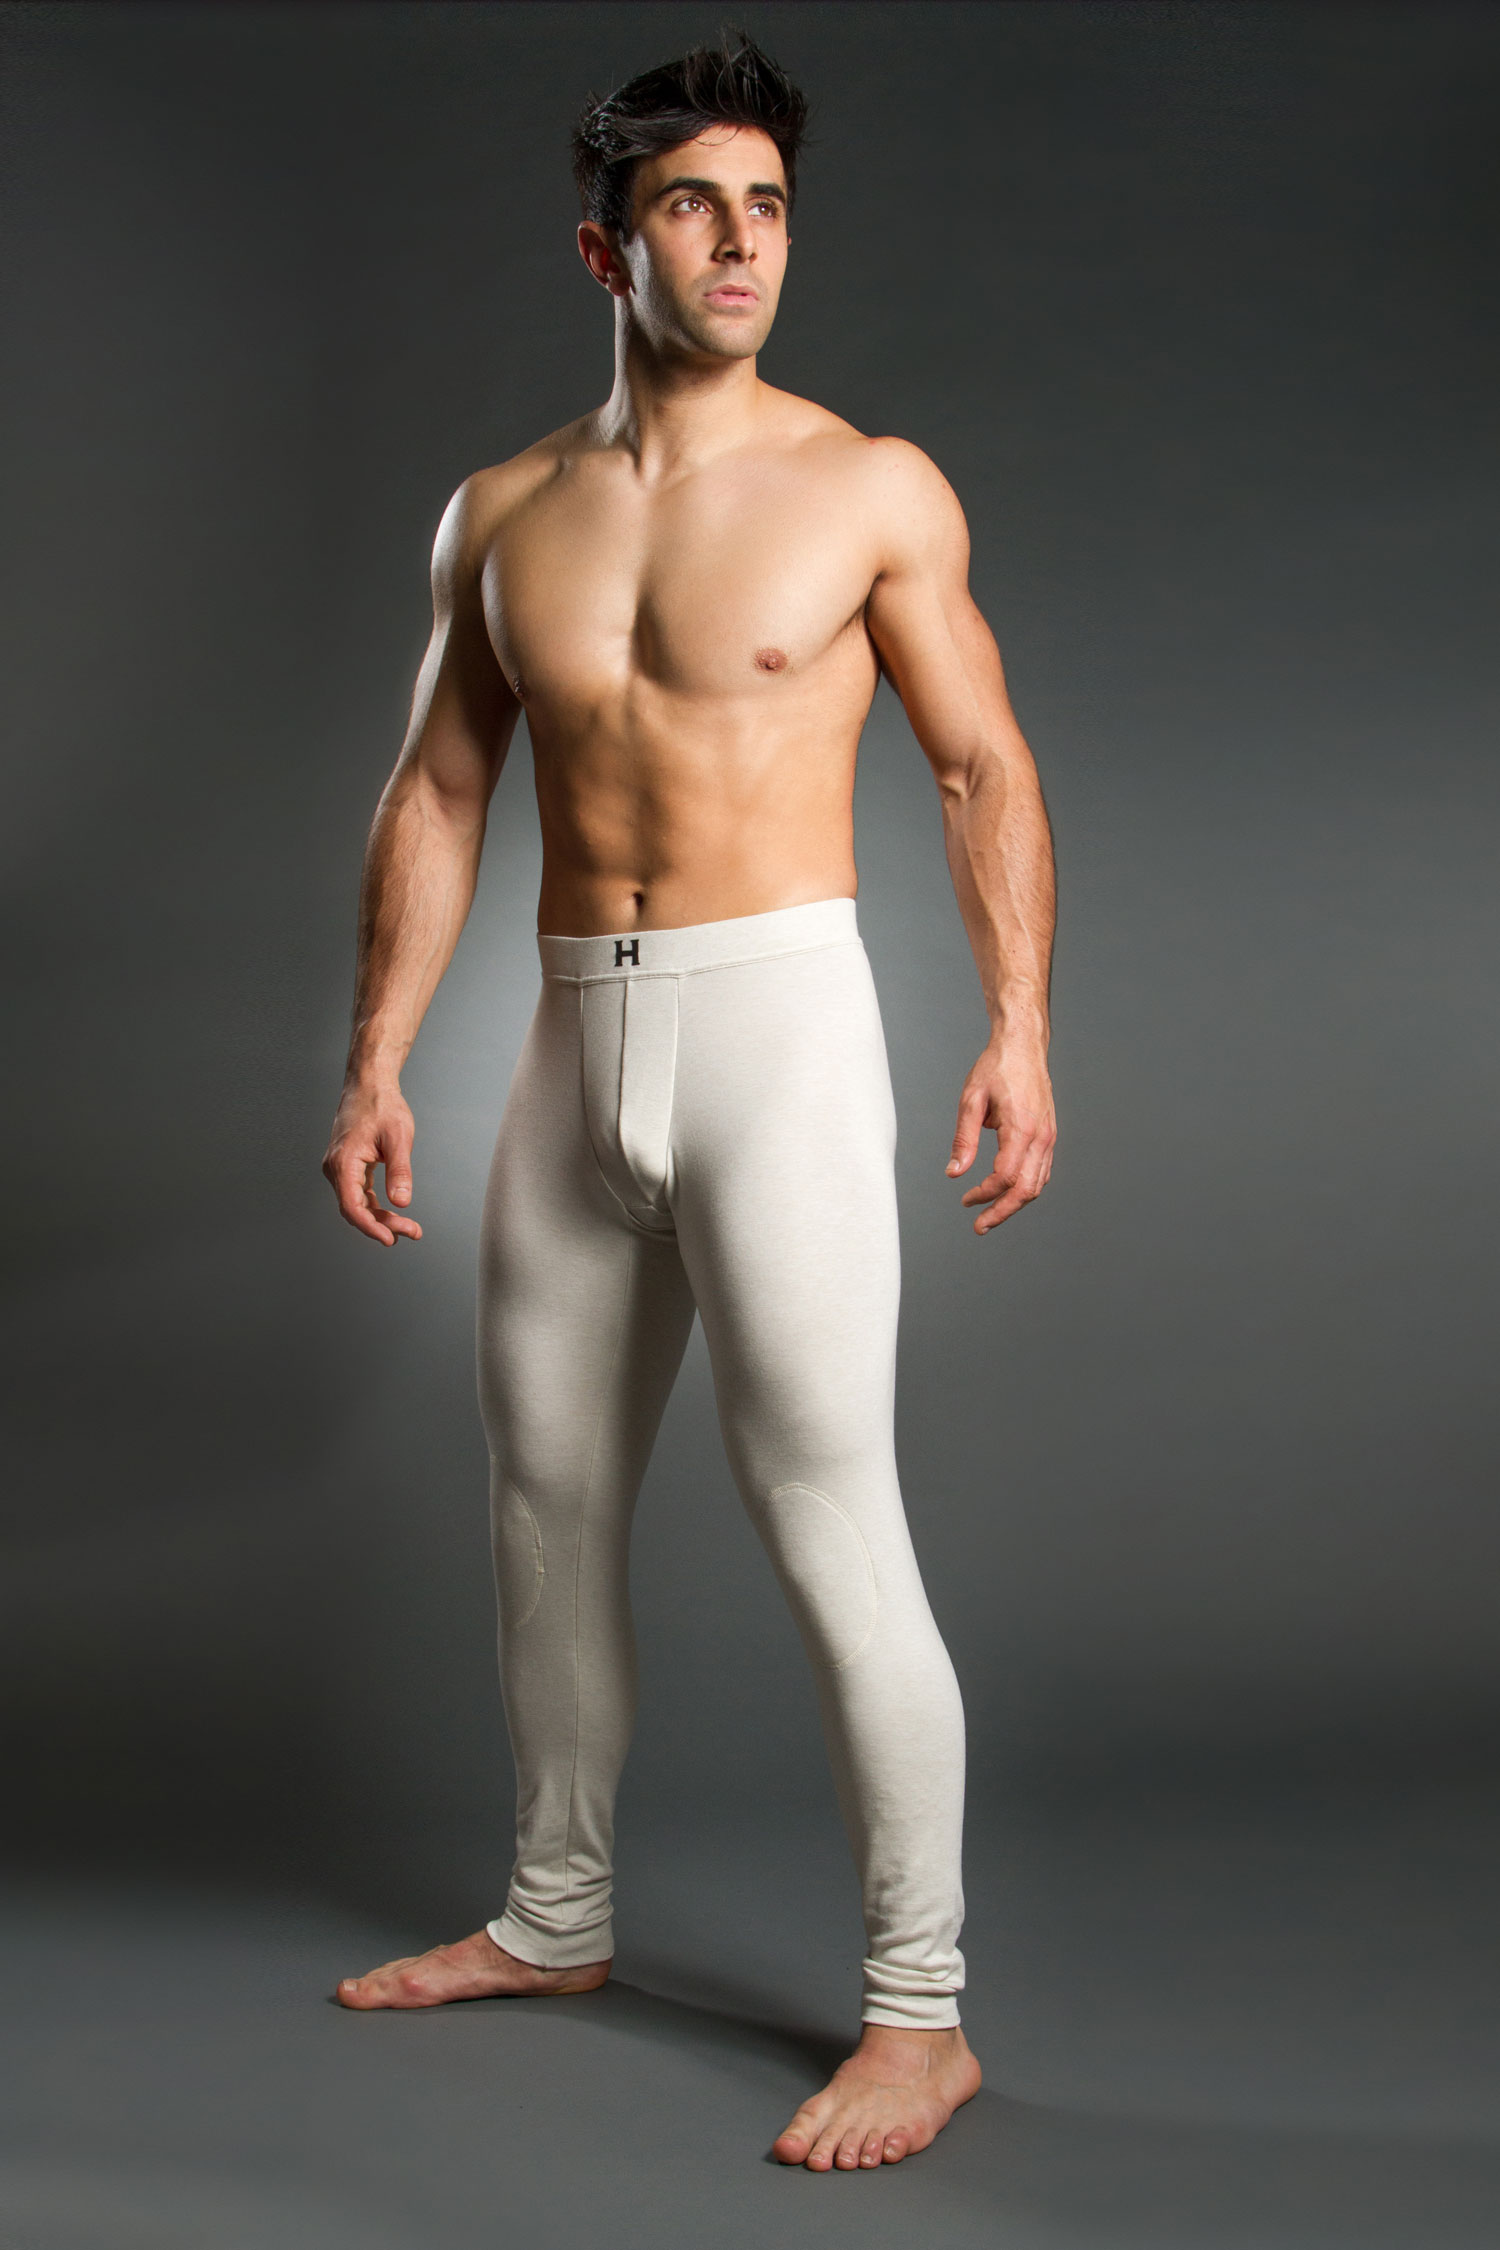 Jockey mens long underwear is durable, long-lasting, and comfortable. Layer long underwear mens for extra warmth. Stock up on men's long underwear and stay warm all day!